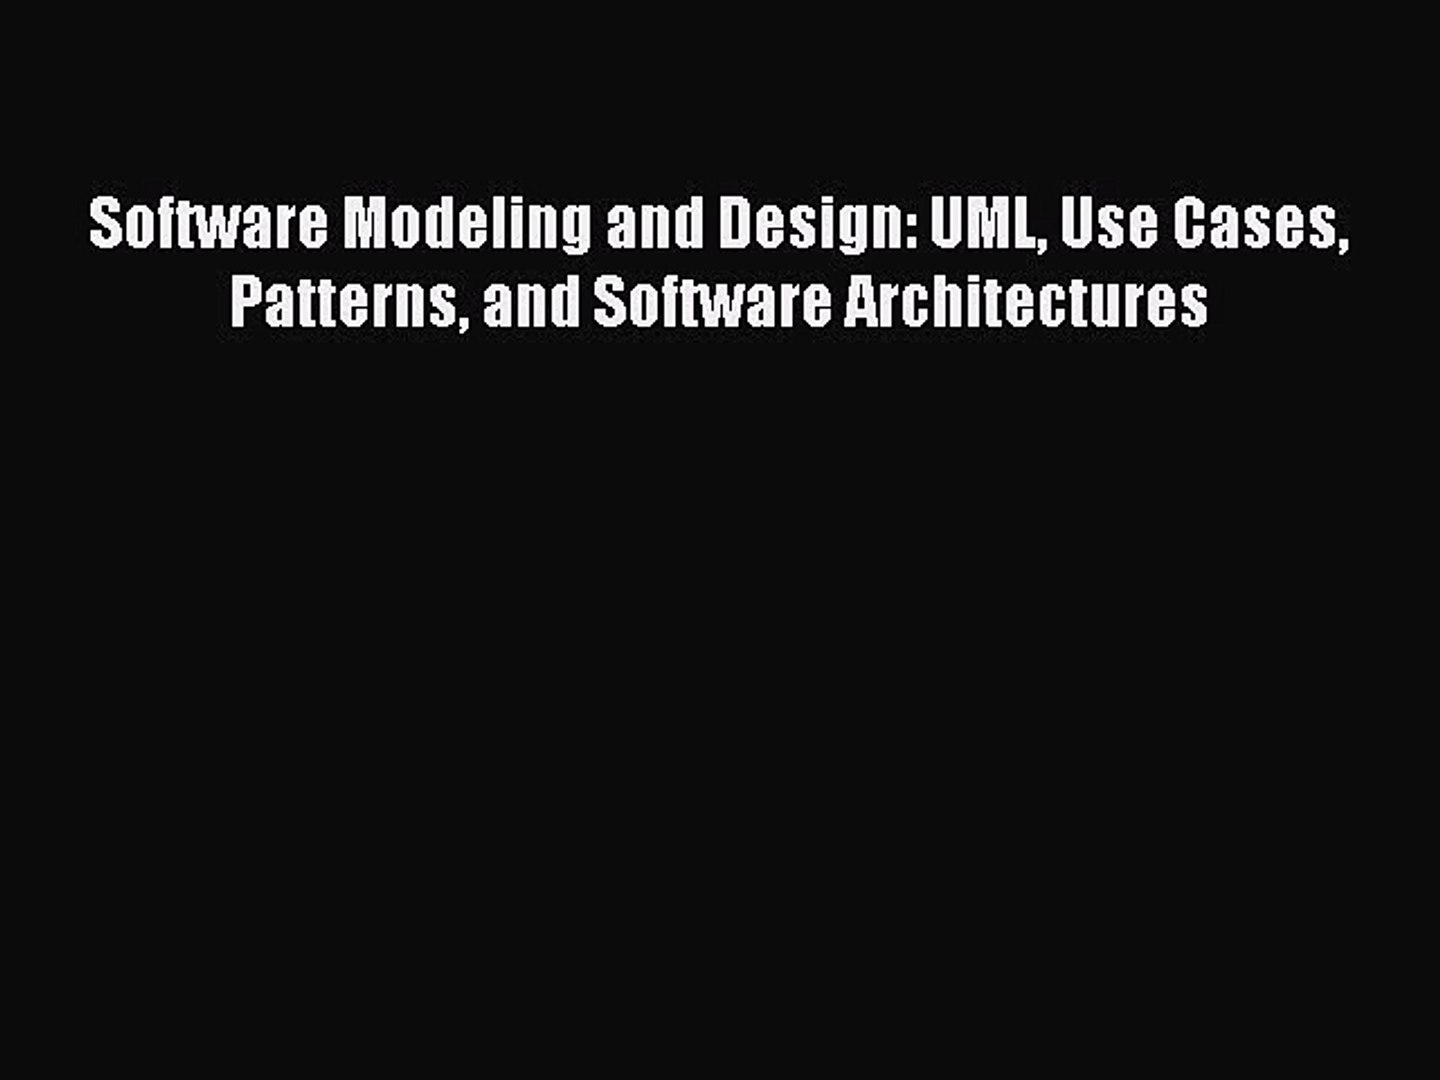 Read Software Modeling and Design: UML Use Cases Patterns and Software Architectures Ebook